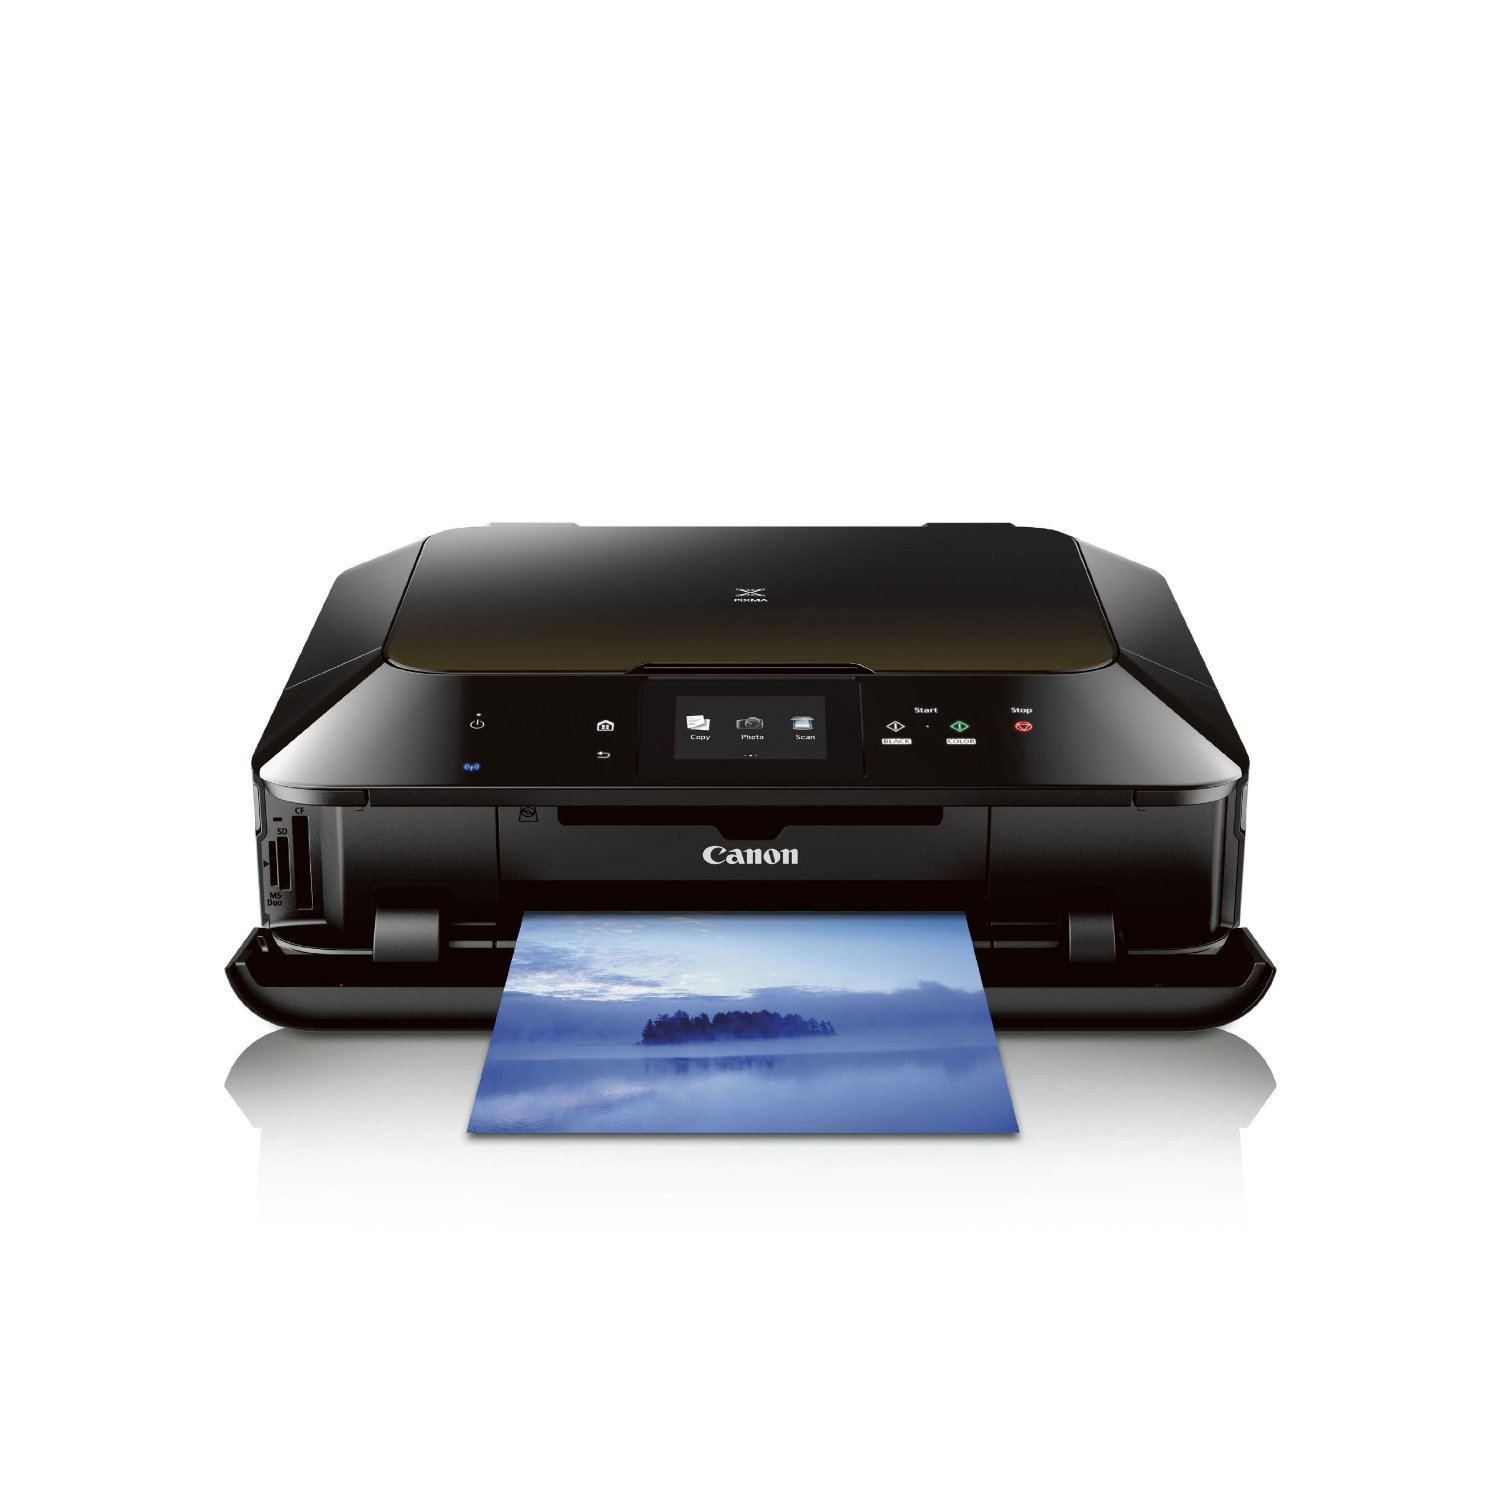 Printer Scanner Use Canon Printer Scanner Without Ink